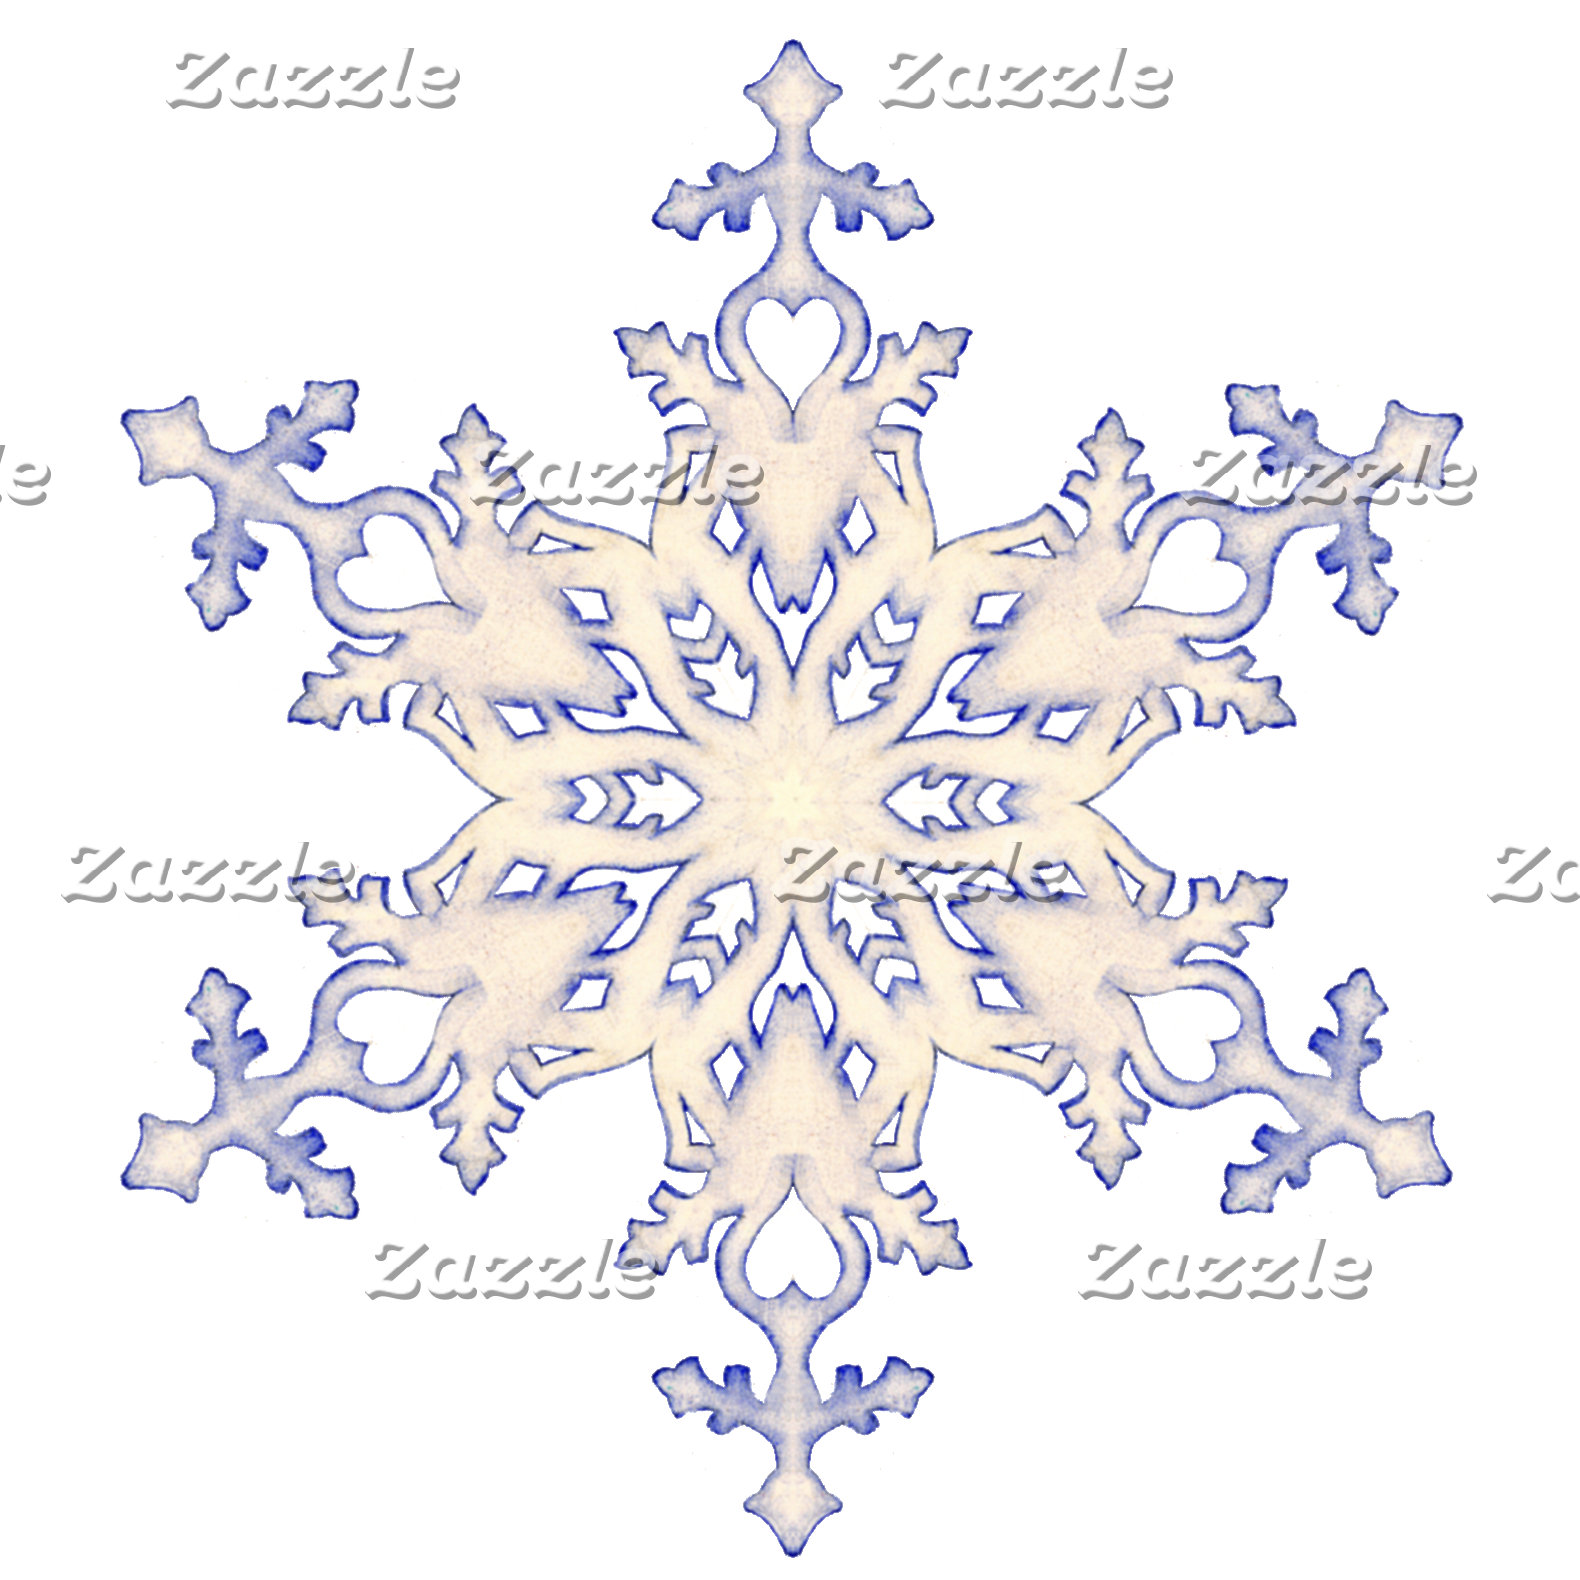 Winter Solstice and Christmas